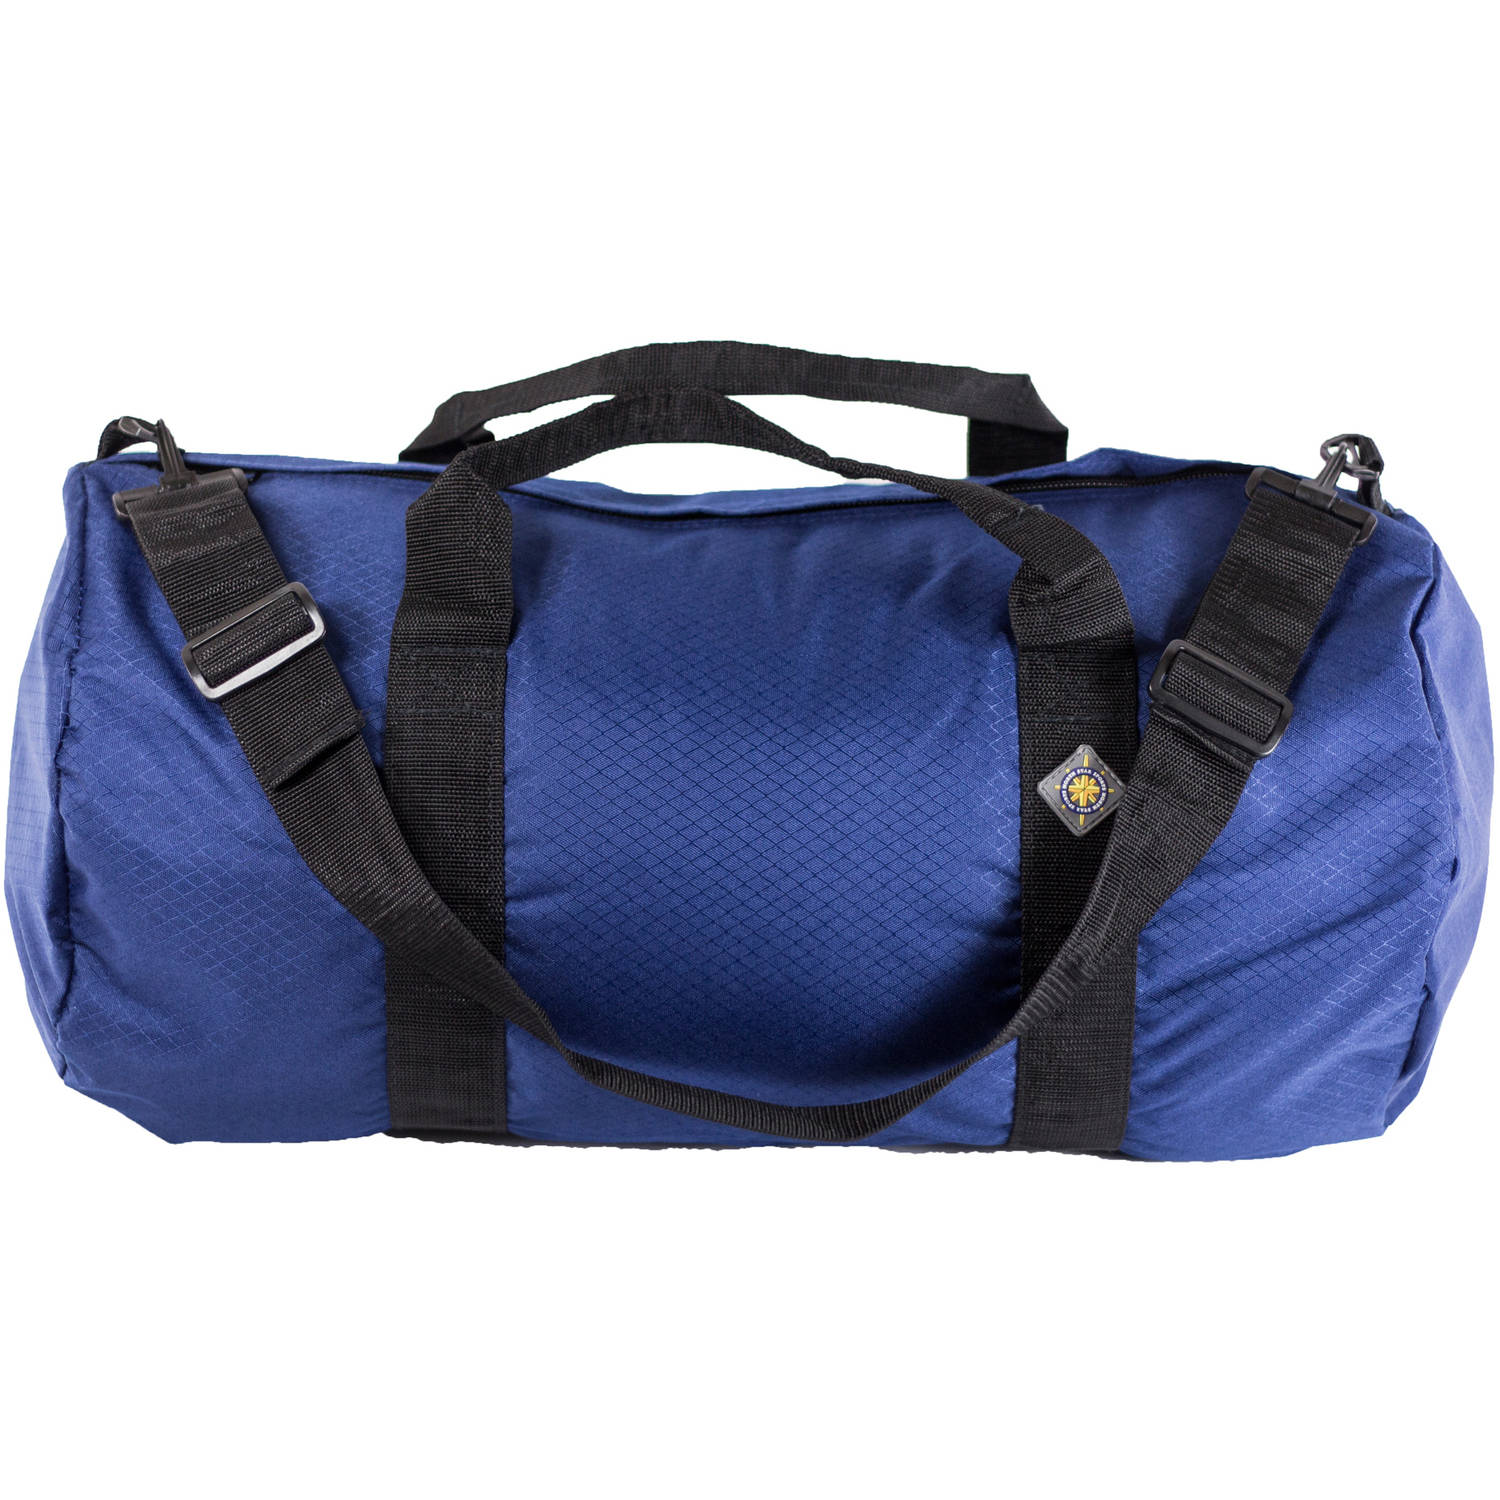 North Star SD 1224 Sport Duffle Bag, Pacific Blue